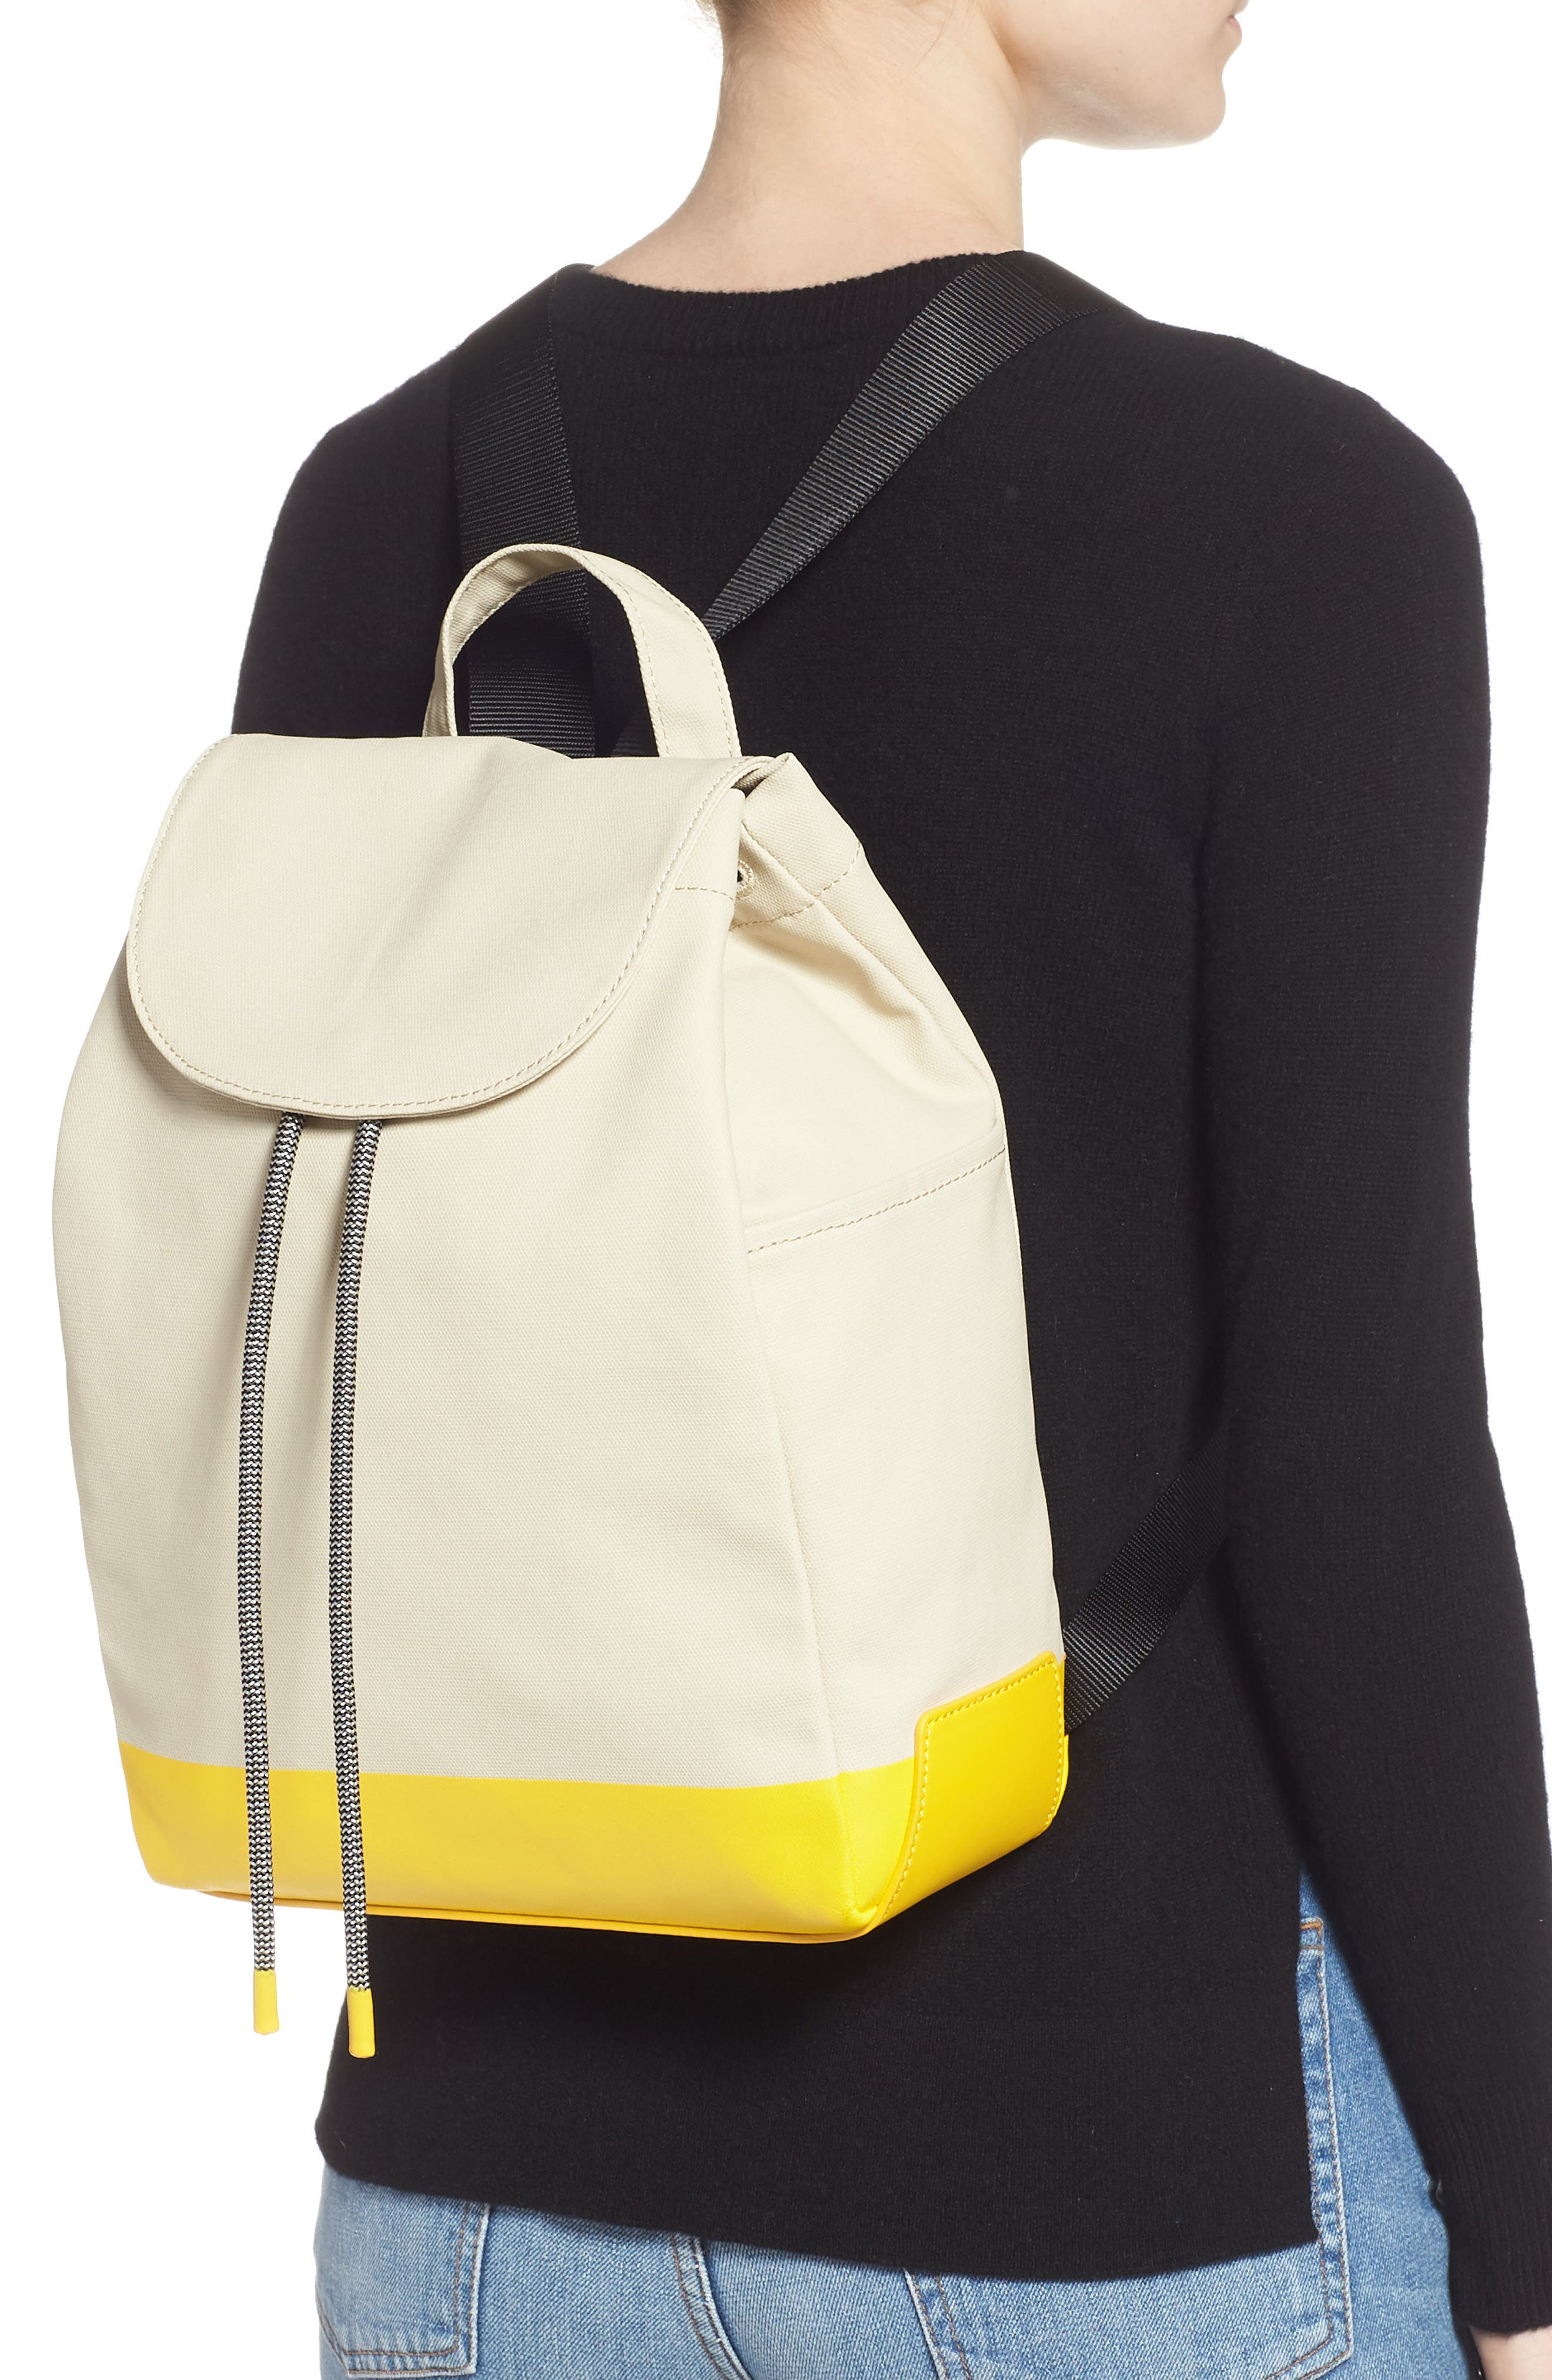 Penny Flap Backpack,                             Alternate thumbnail 2, color,                             IVORY BIRCH/YELLOW